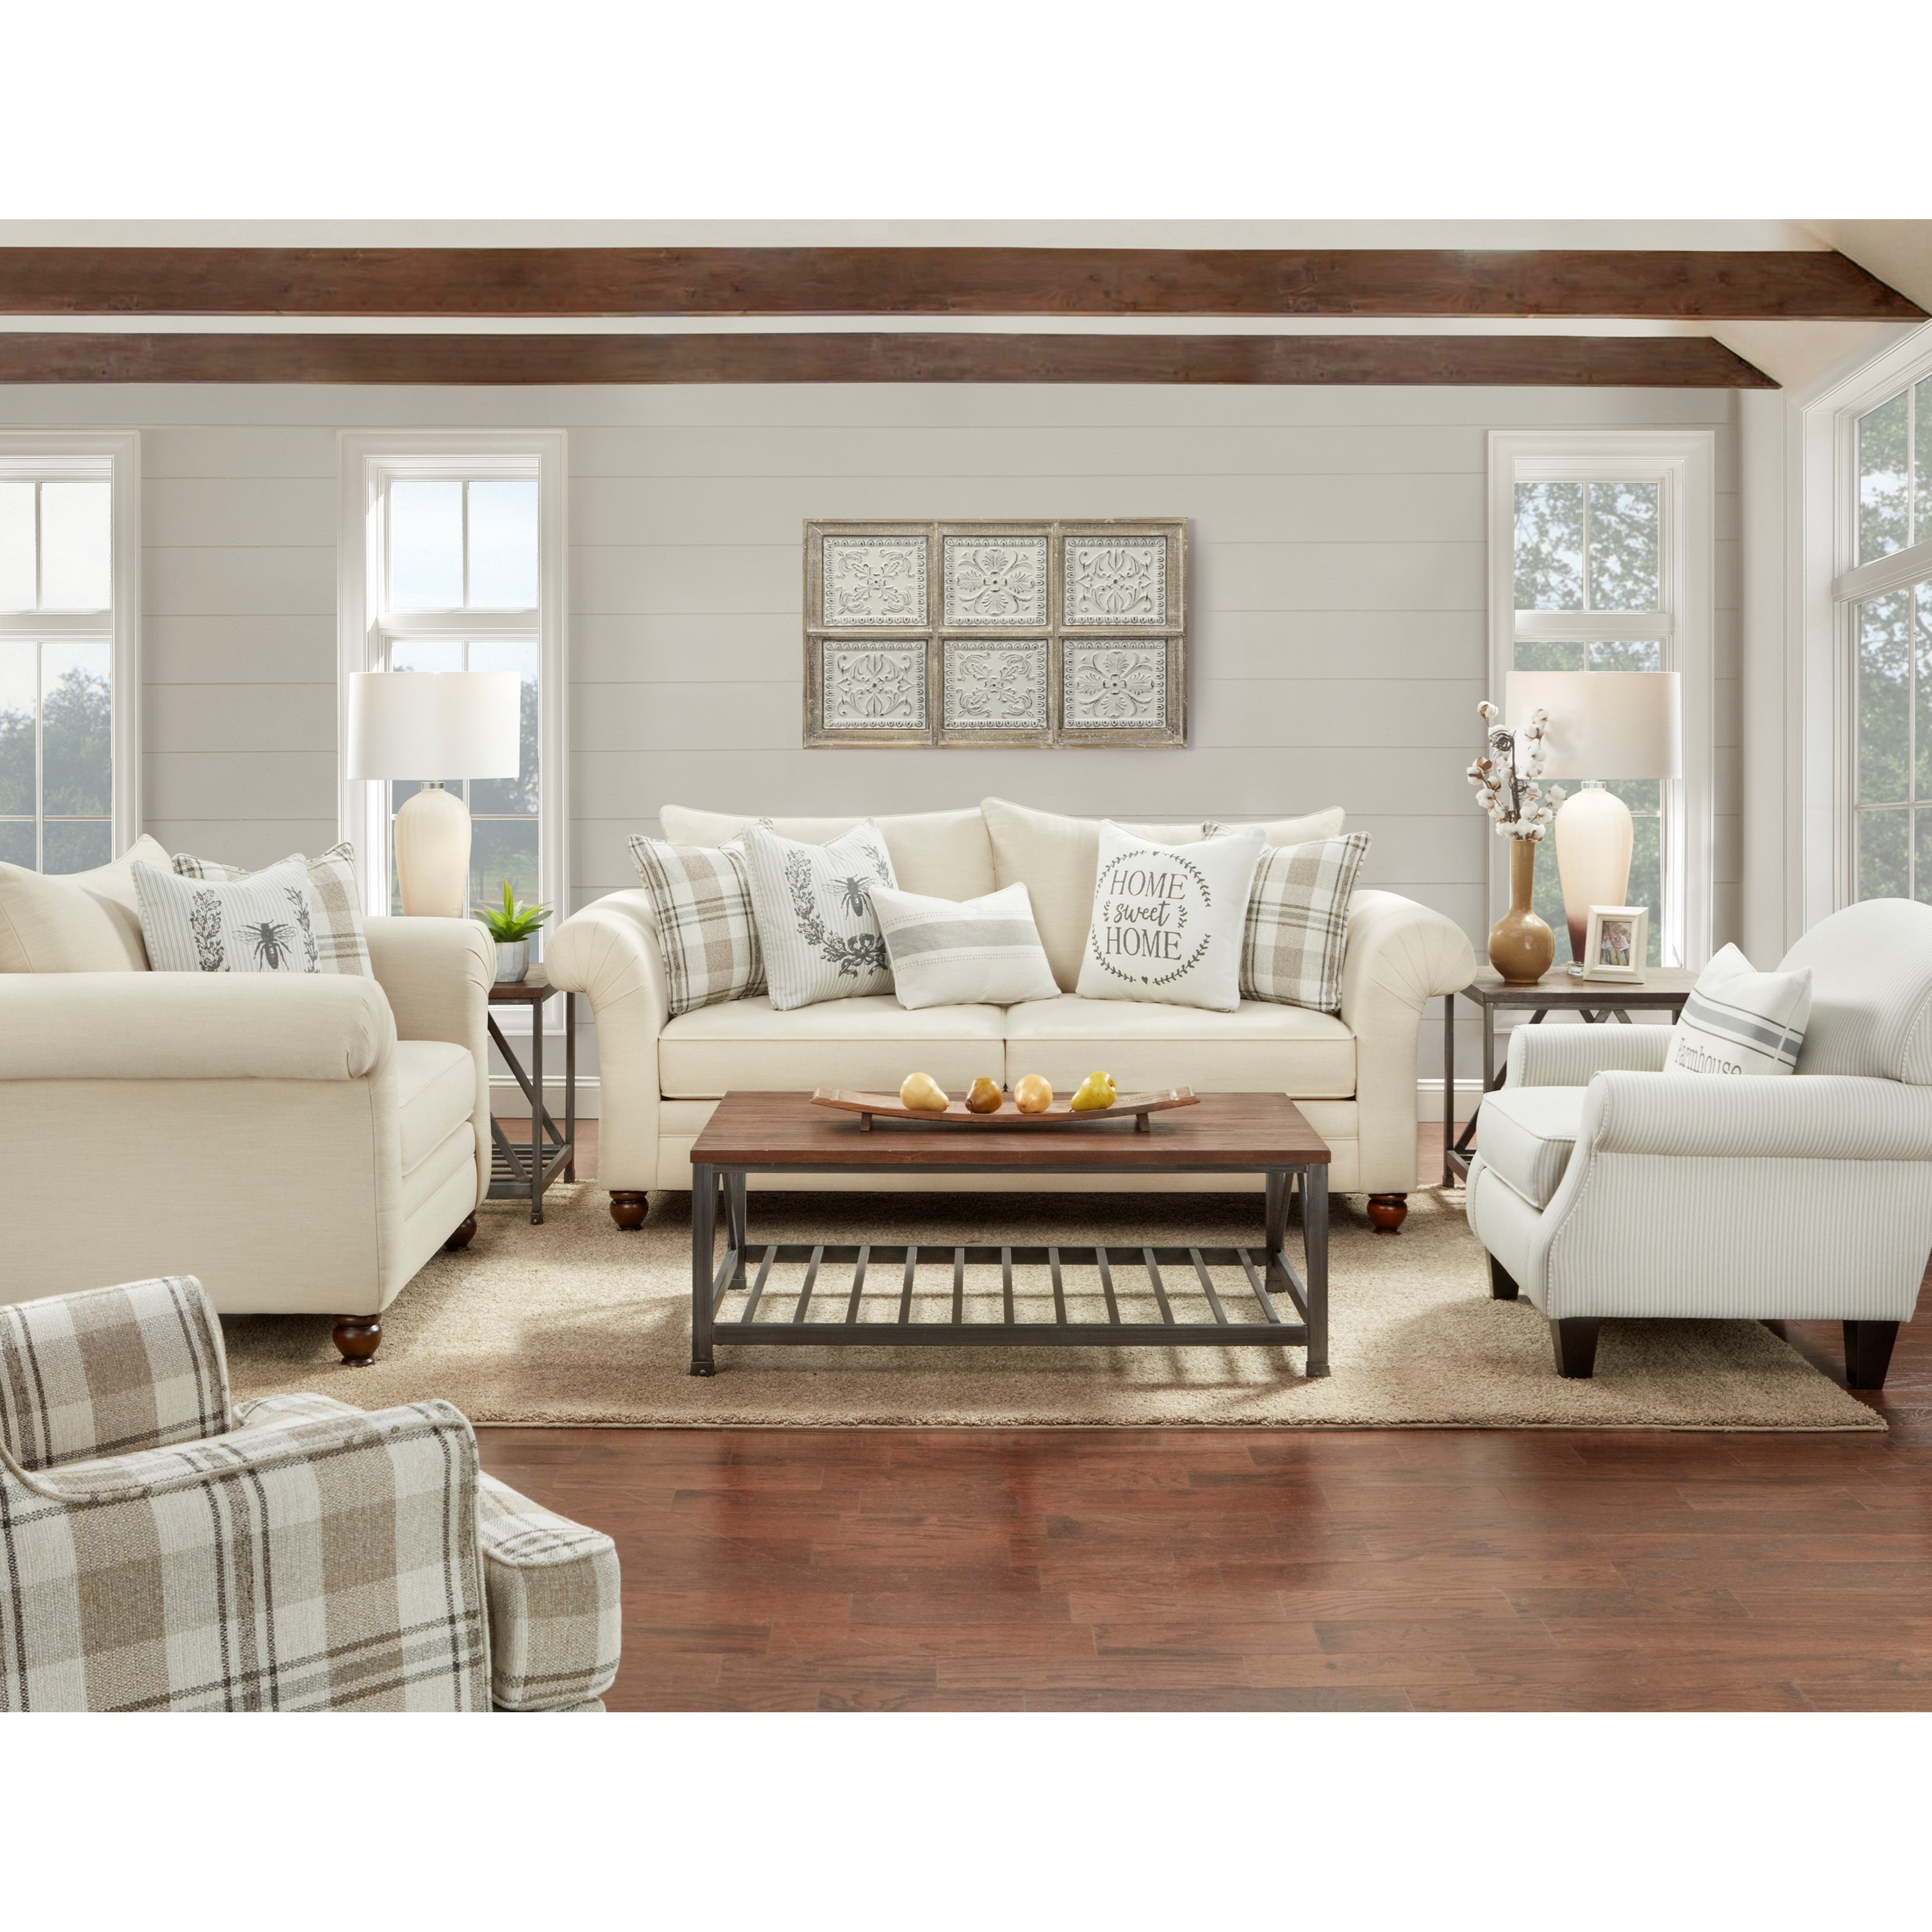 06-00 Living Room Group by Fusion Furniture at Prime Brothers Furniture